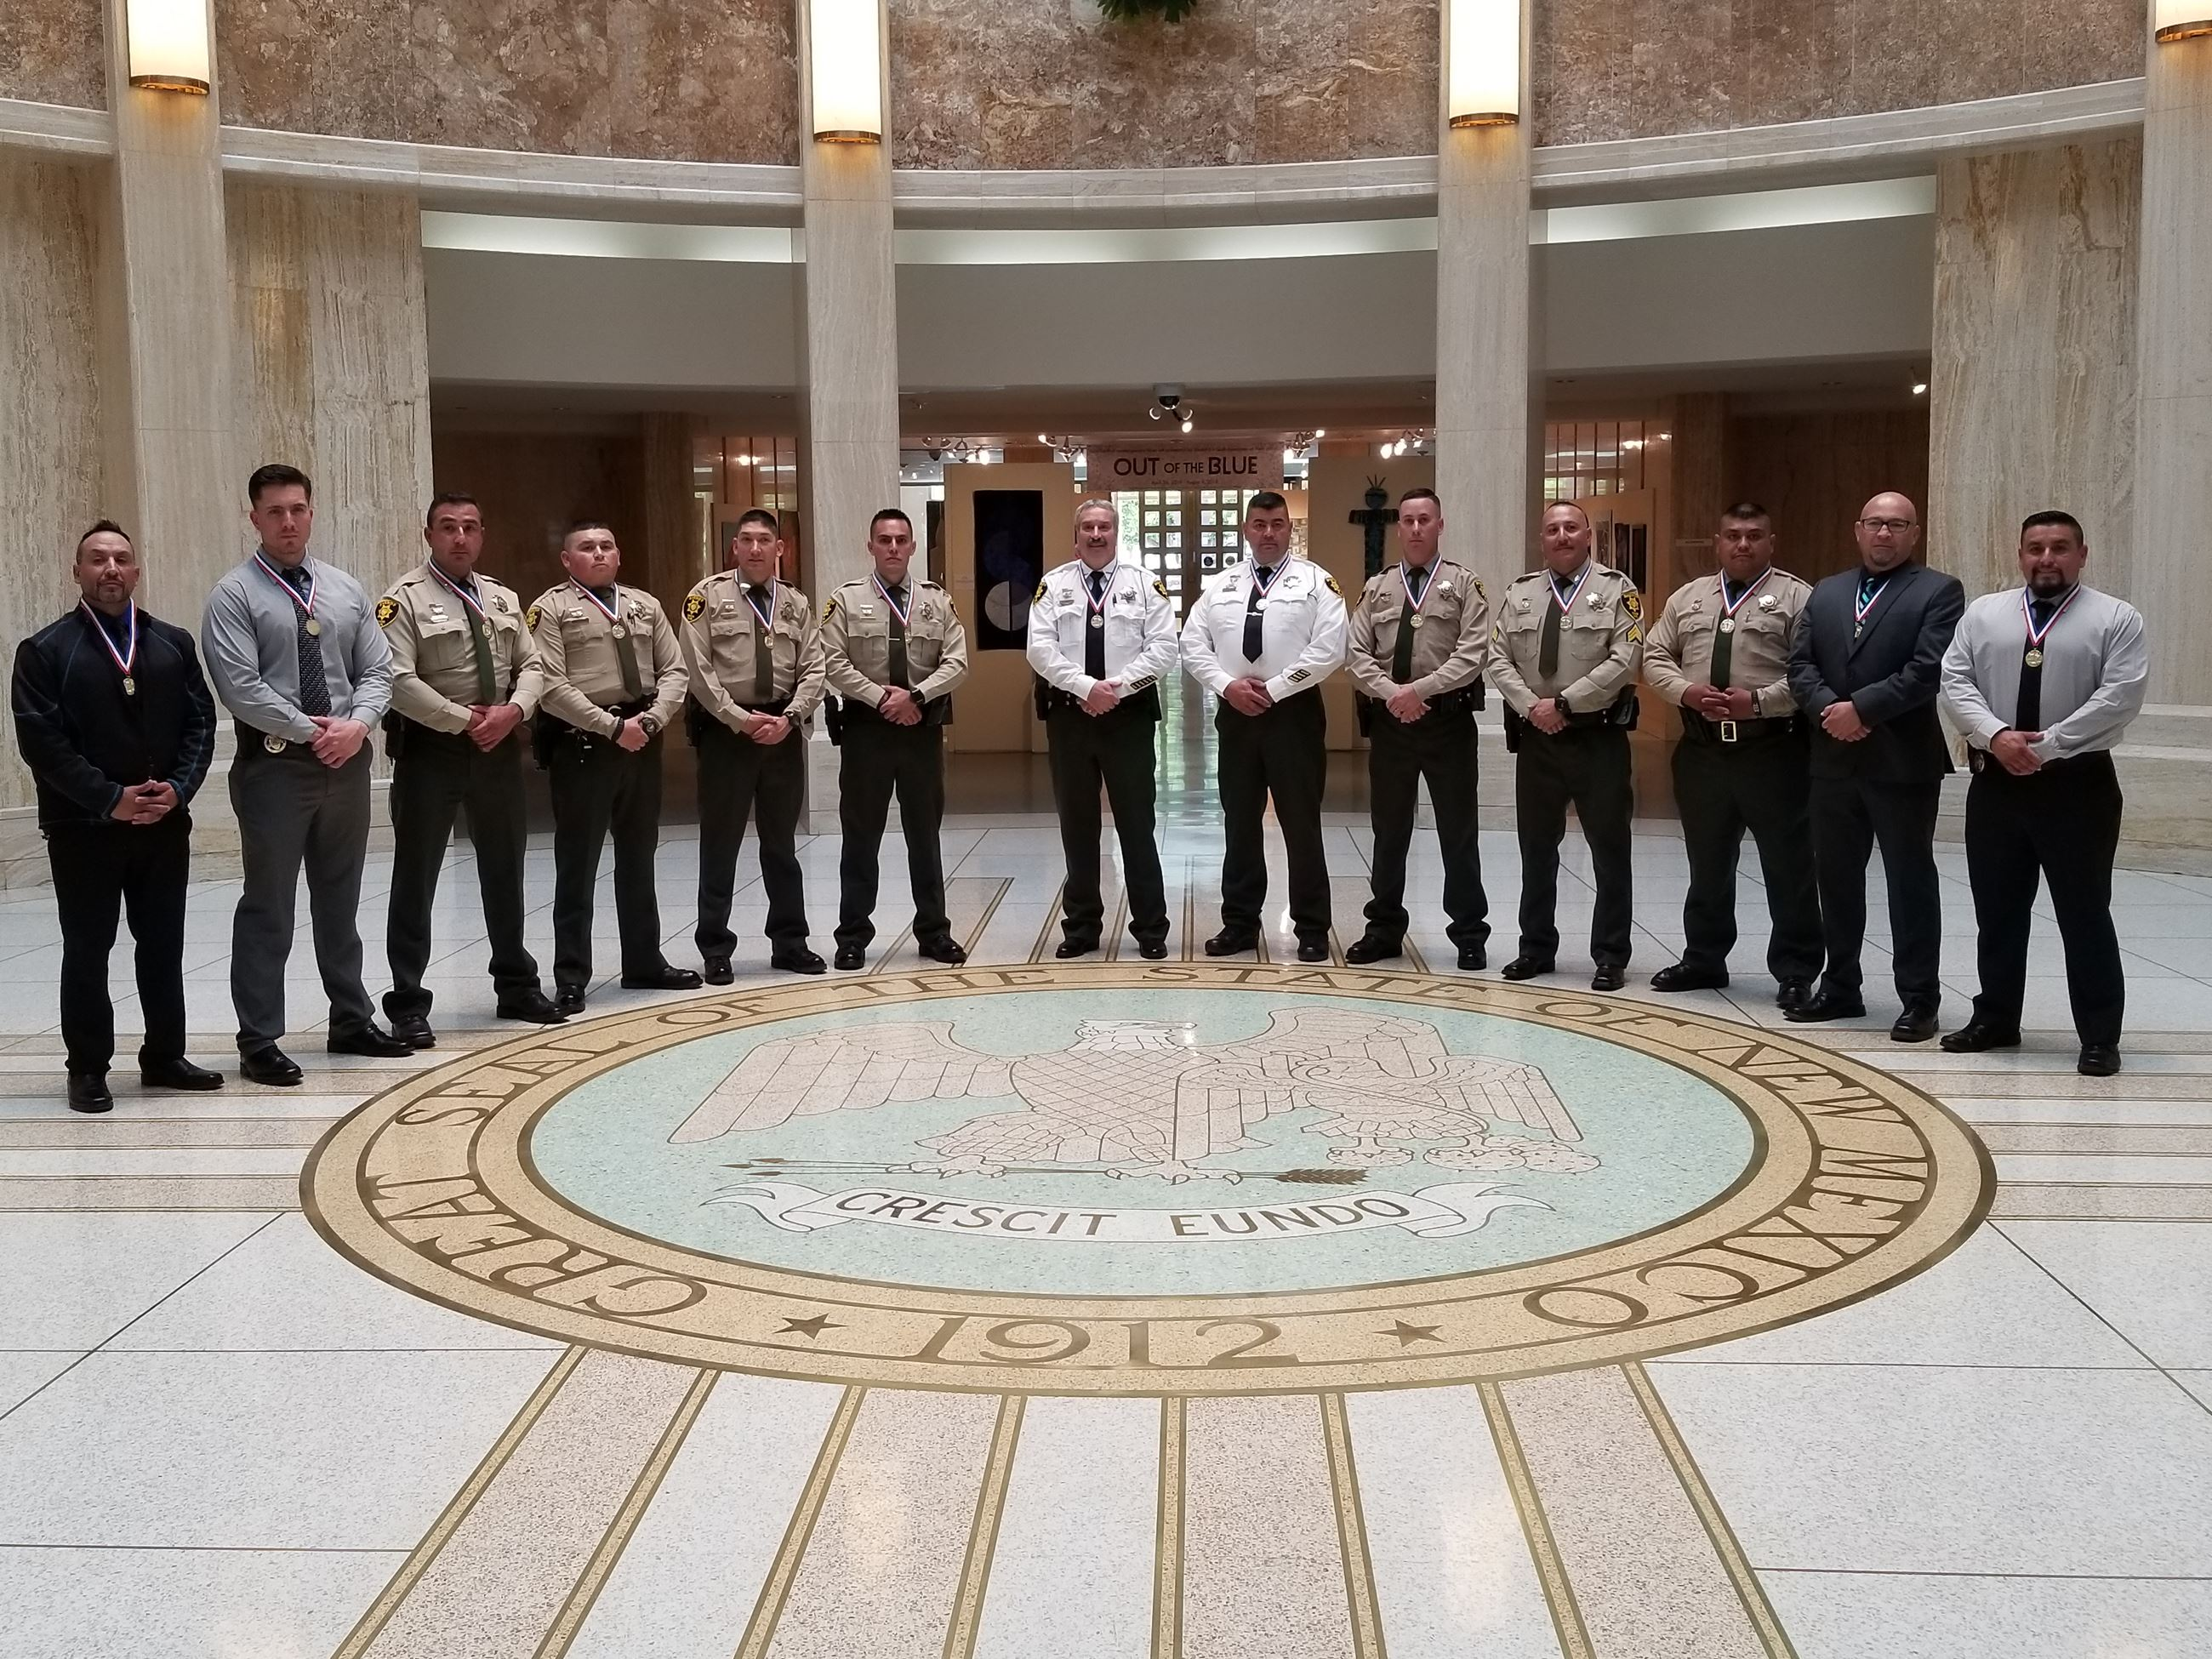 Officers in State Capital Building